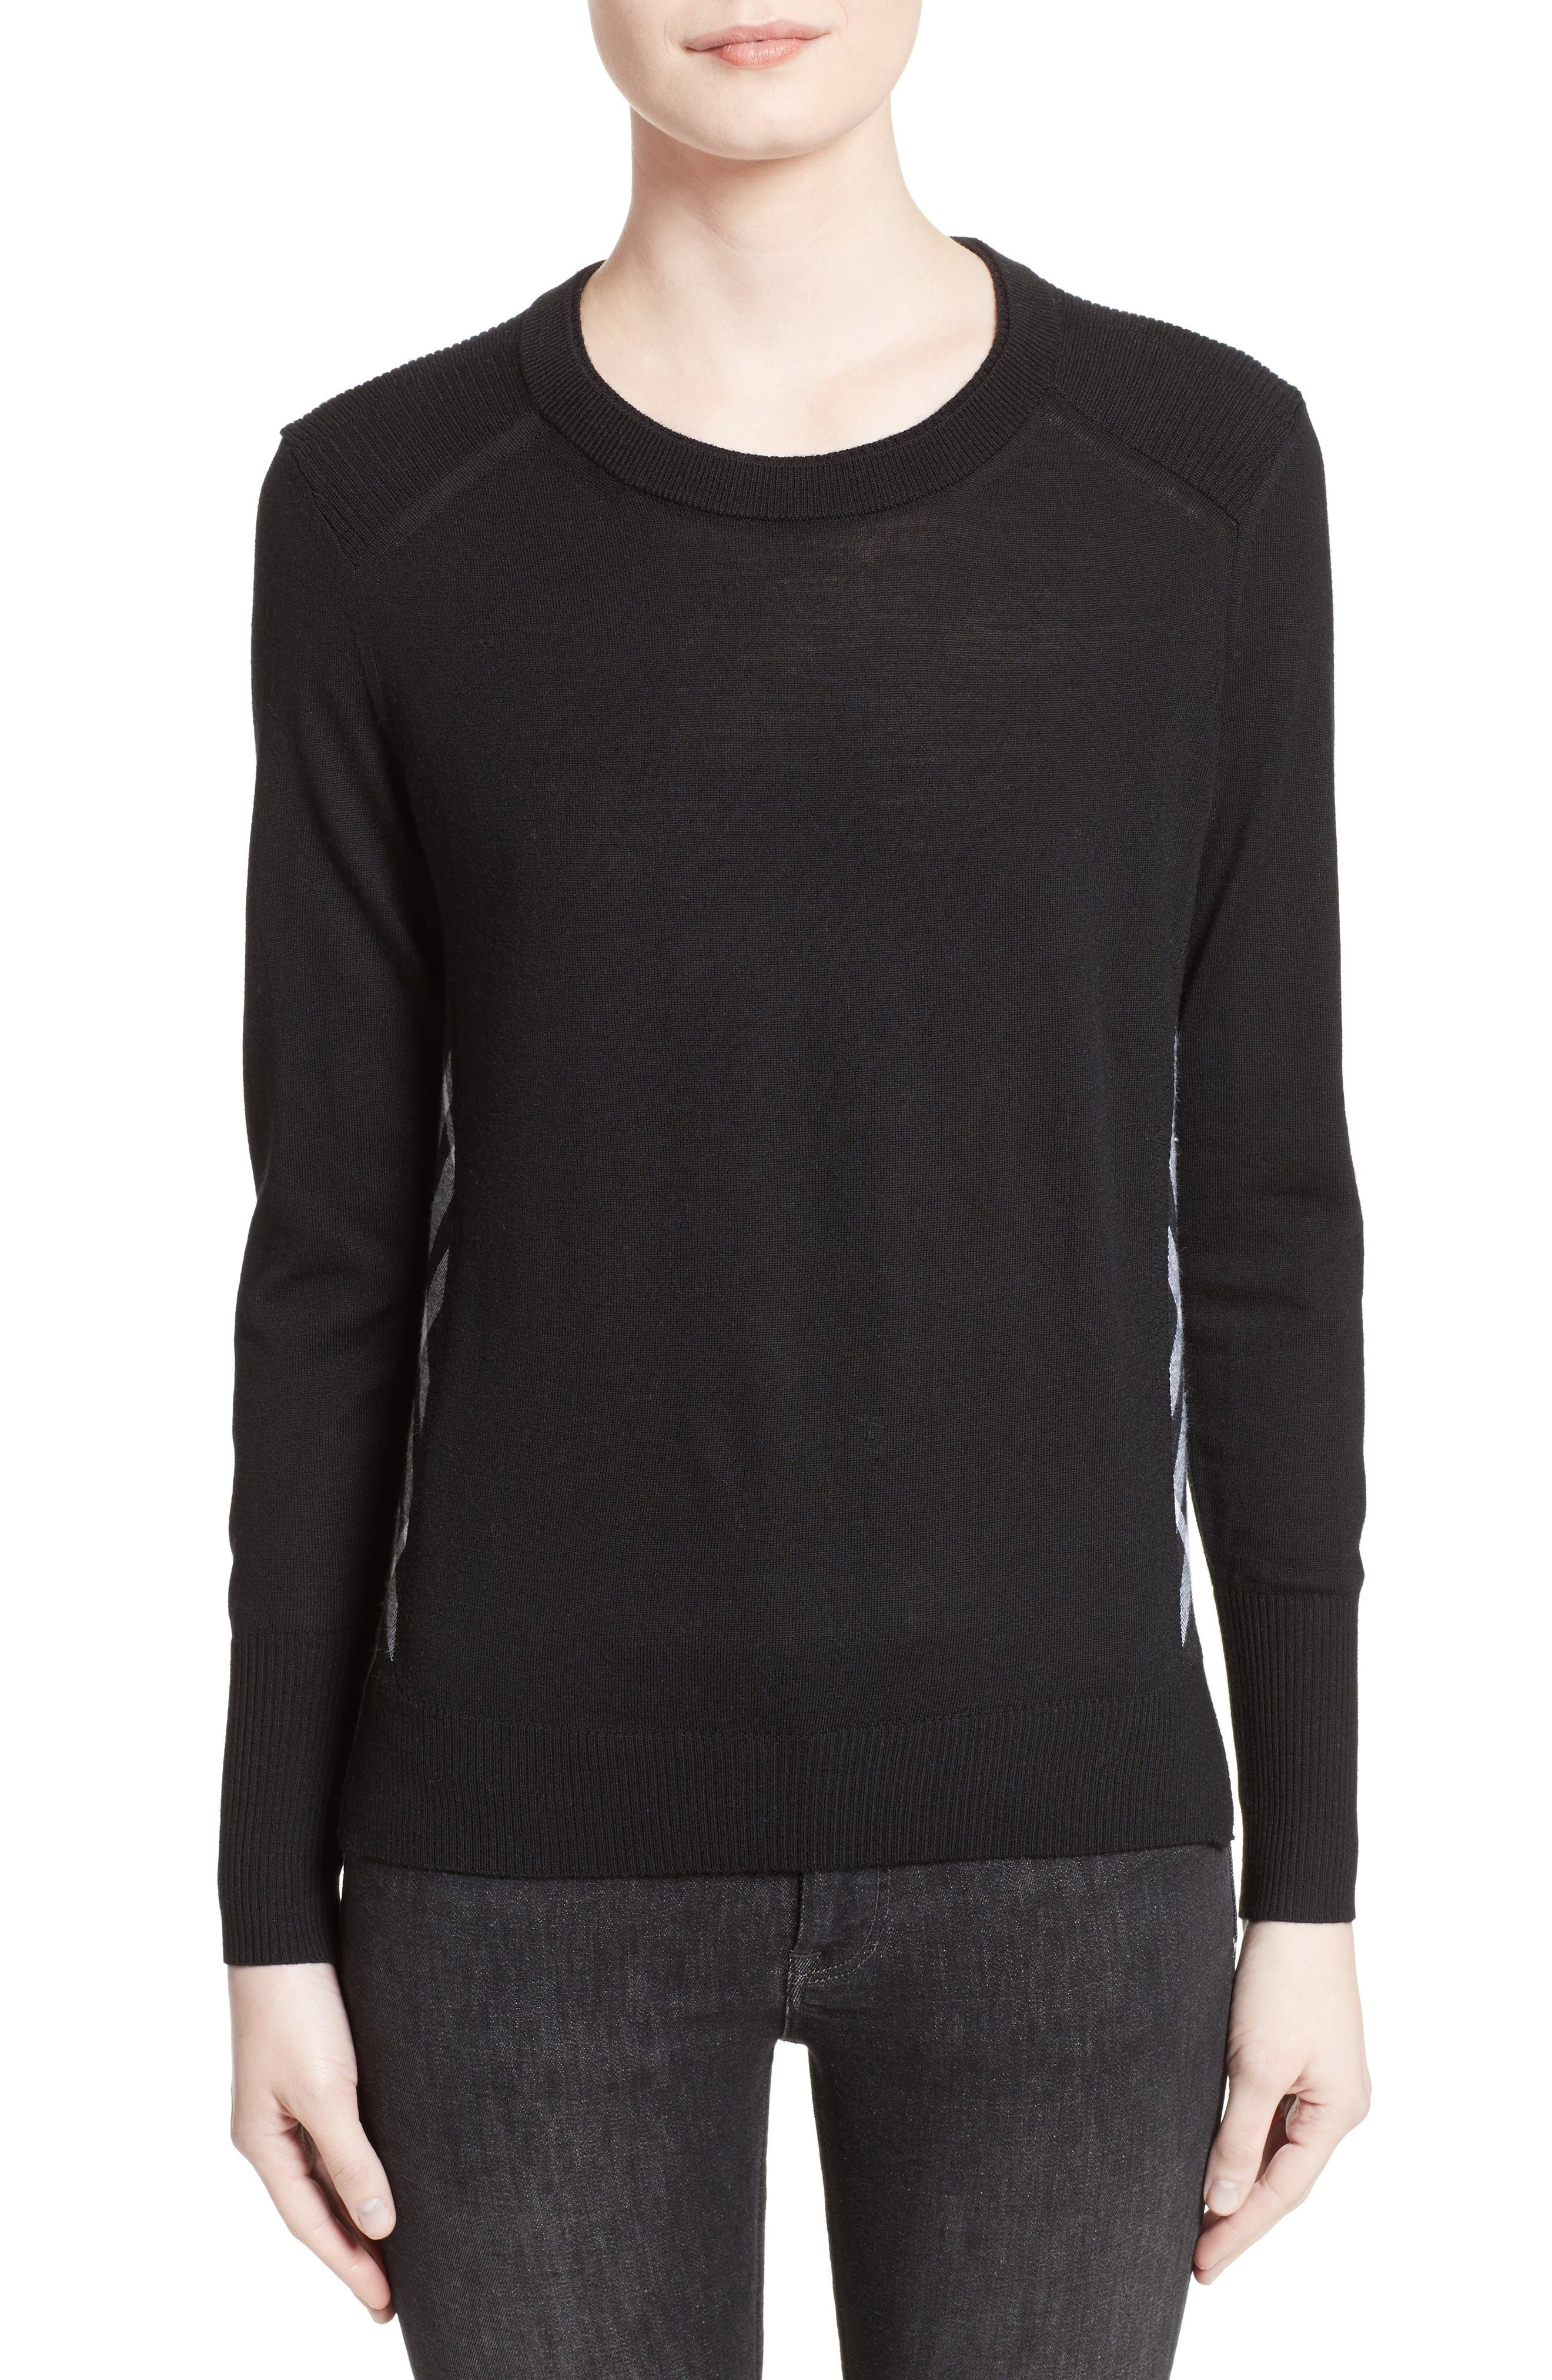 Burberry Meigan Merino Wool Sweater